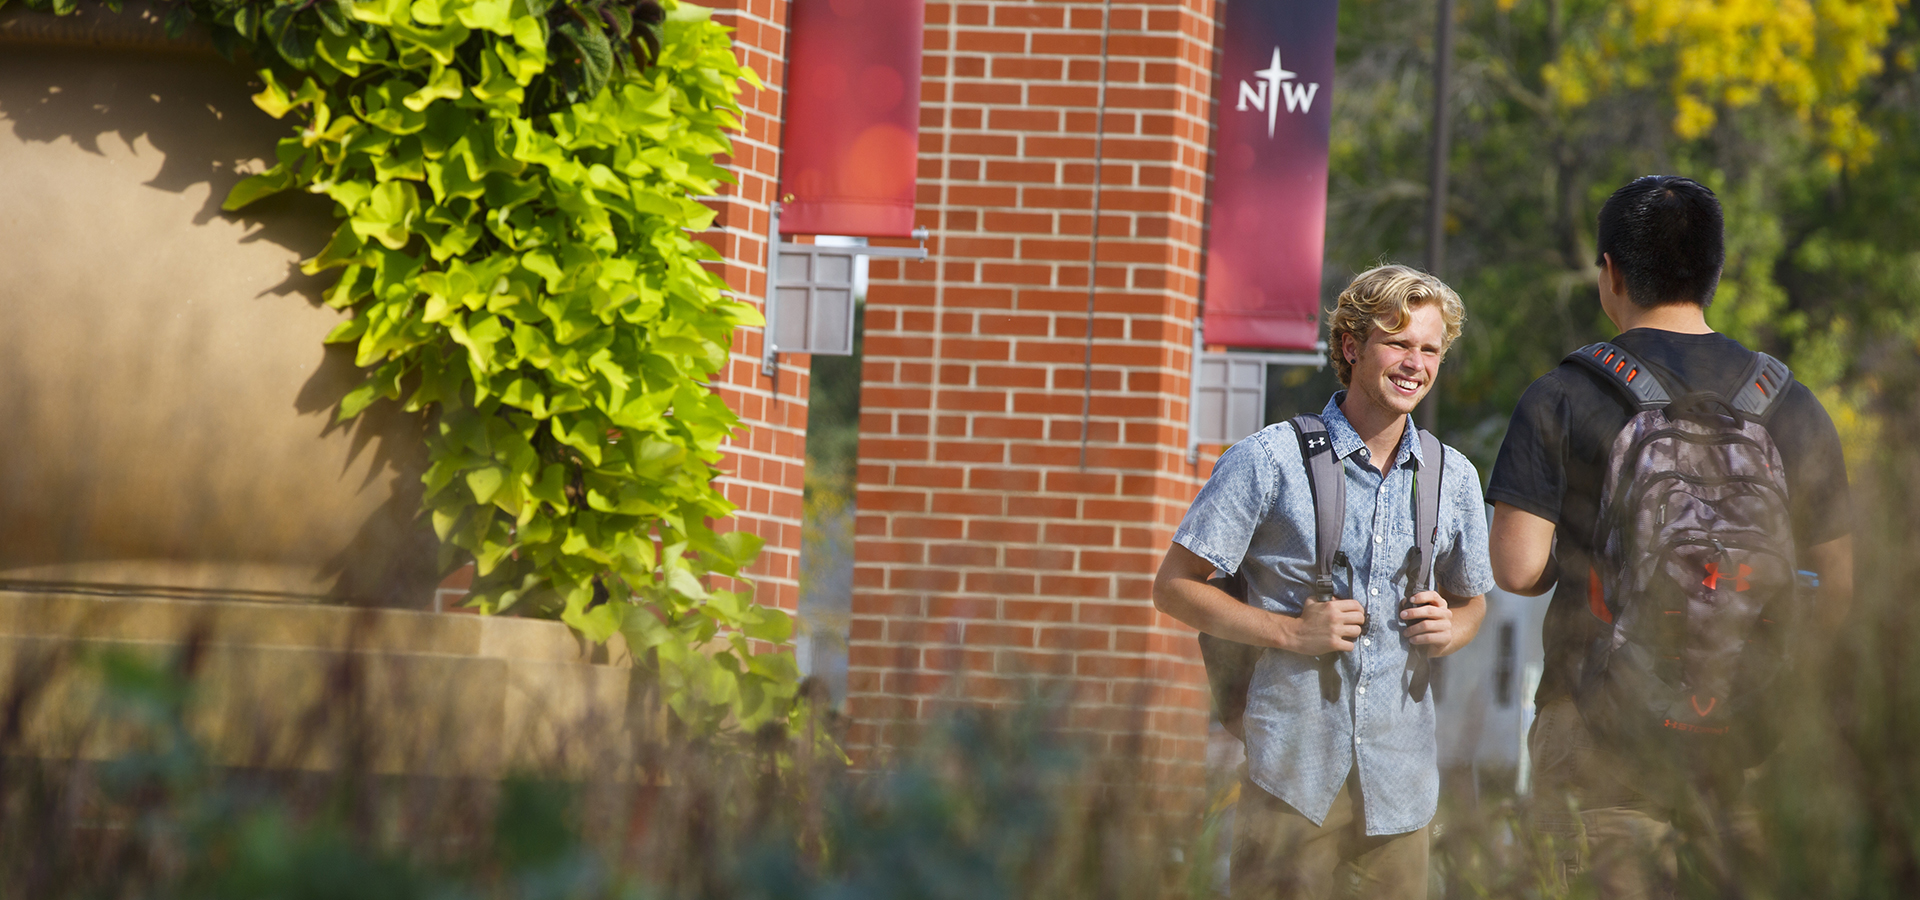 Real. Smart. Christians. Authentic community. Excellent academics. Christ-centered learning. That's Northwestern College.